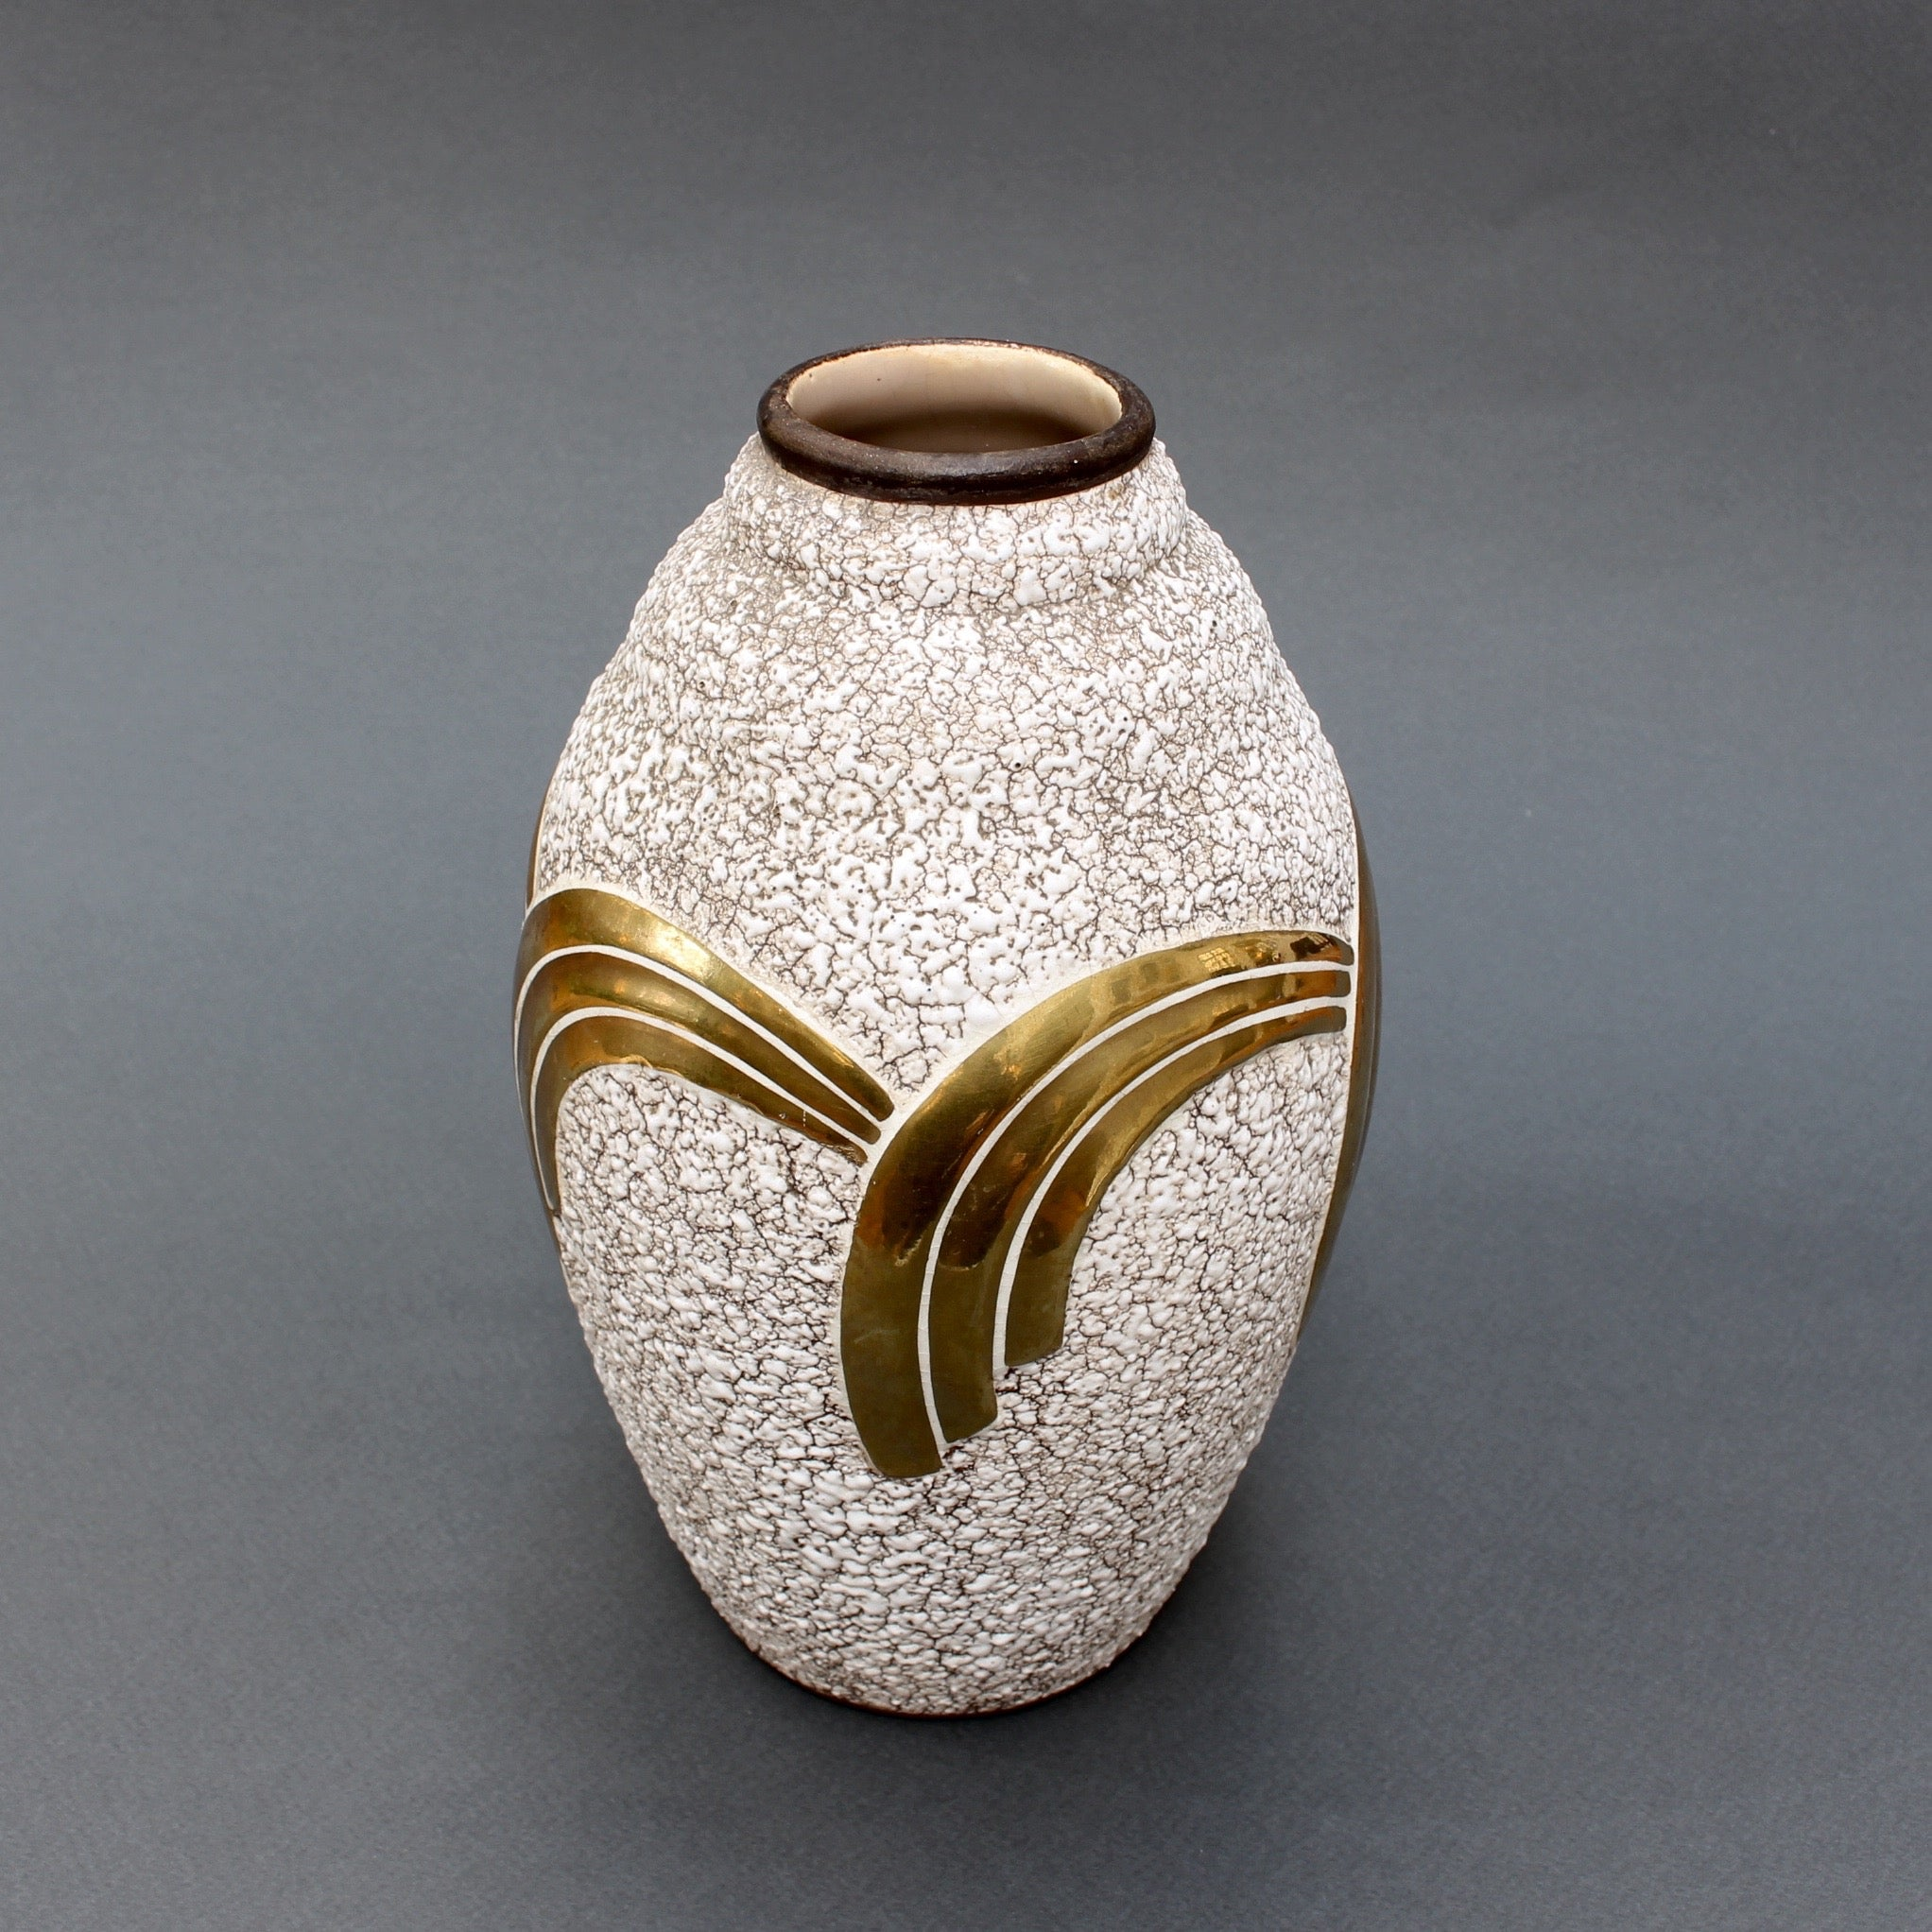 Art Deco Ceramic Vase by ODYV (Circa 1930s)